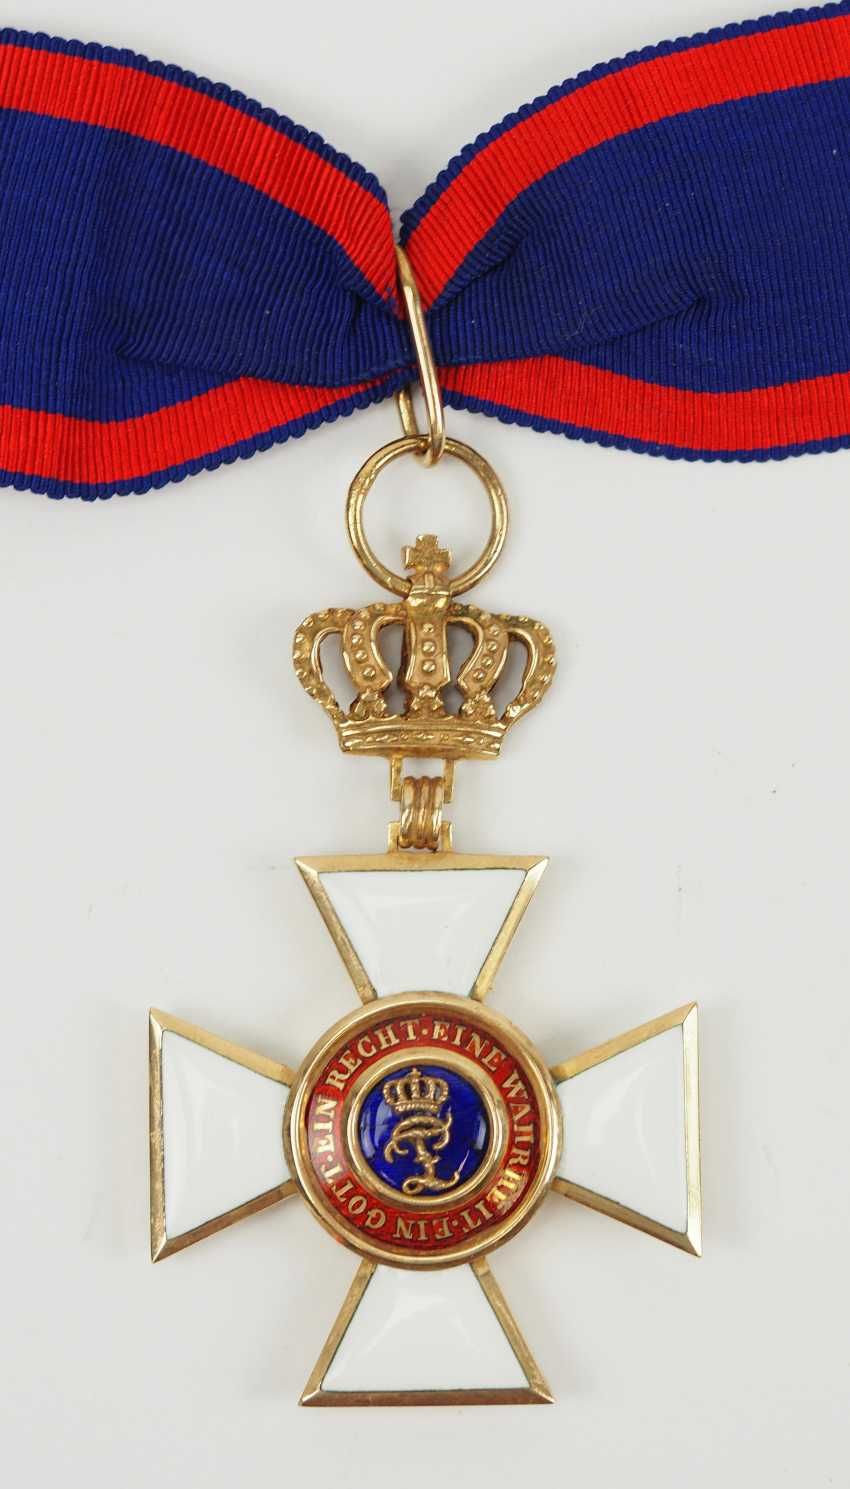 Oldenburg: house - and merit order of Peter Friedrich Ludwig, commander's cross. - photo 1